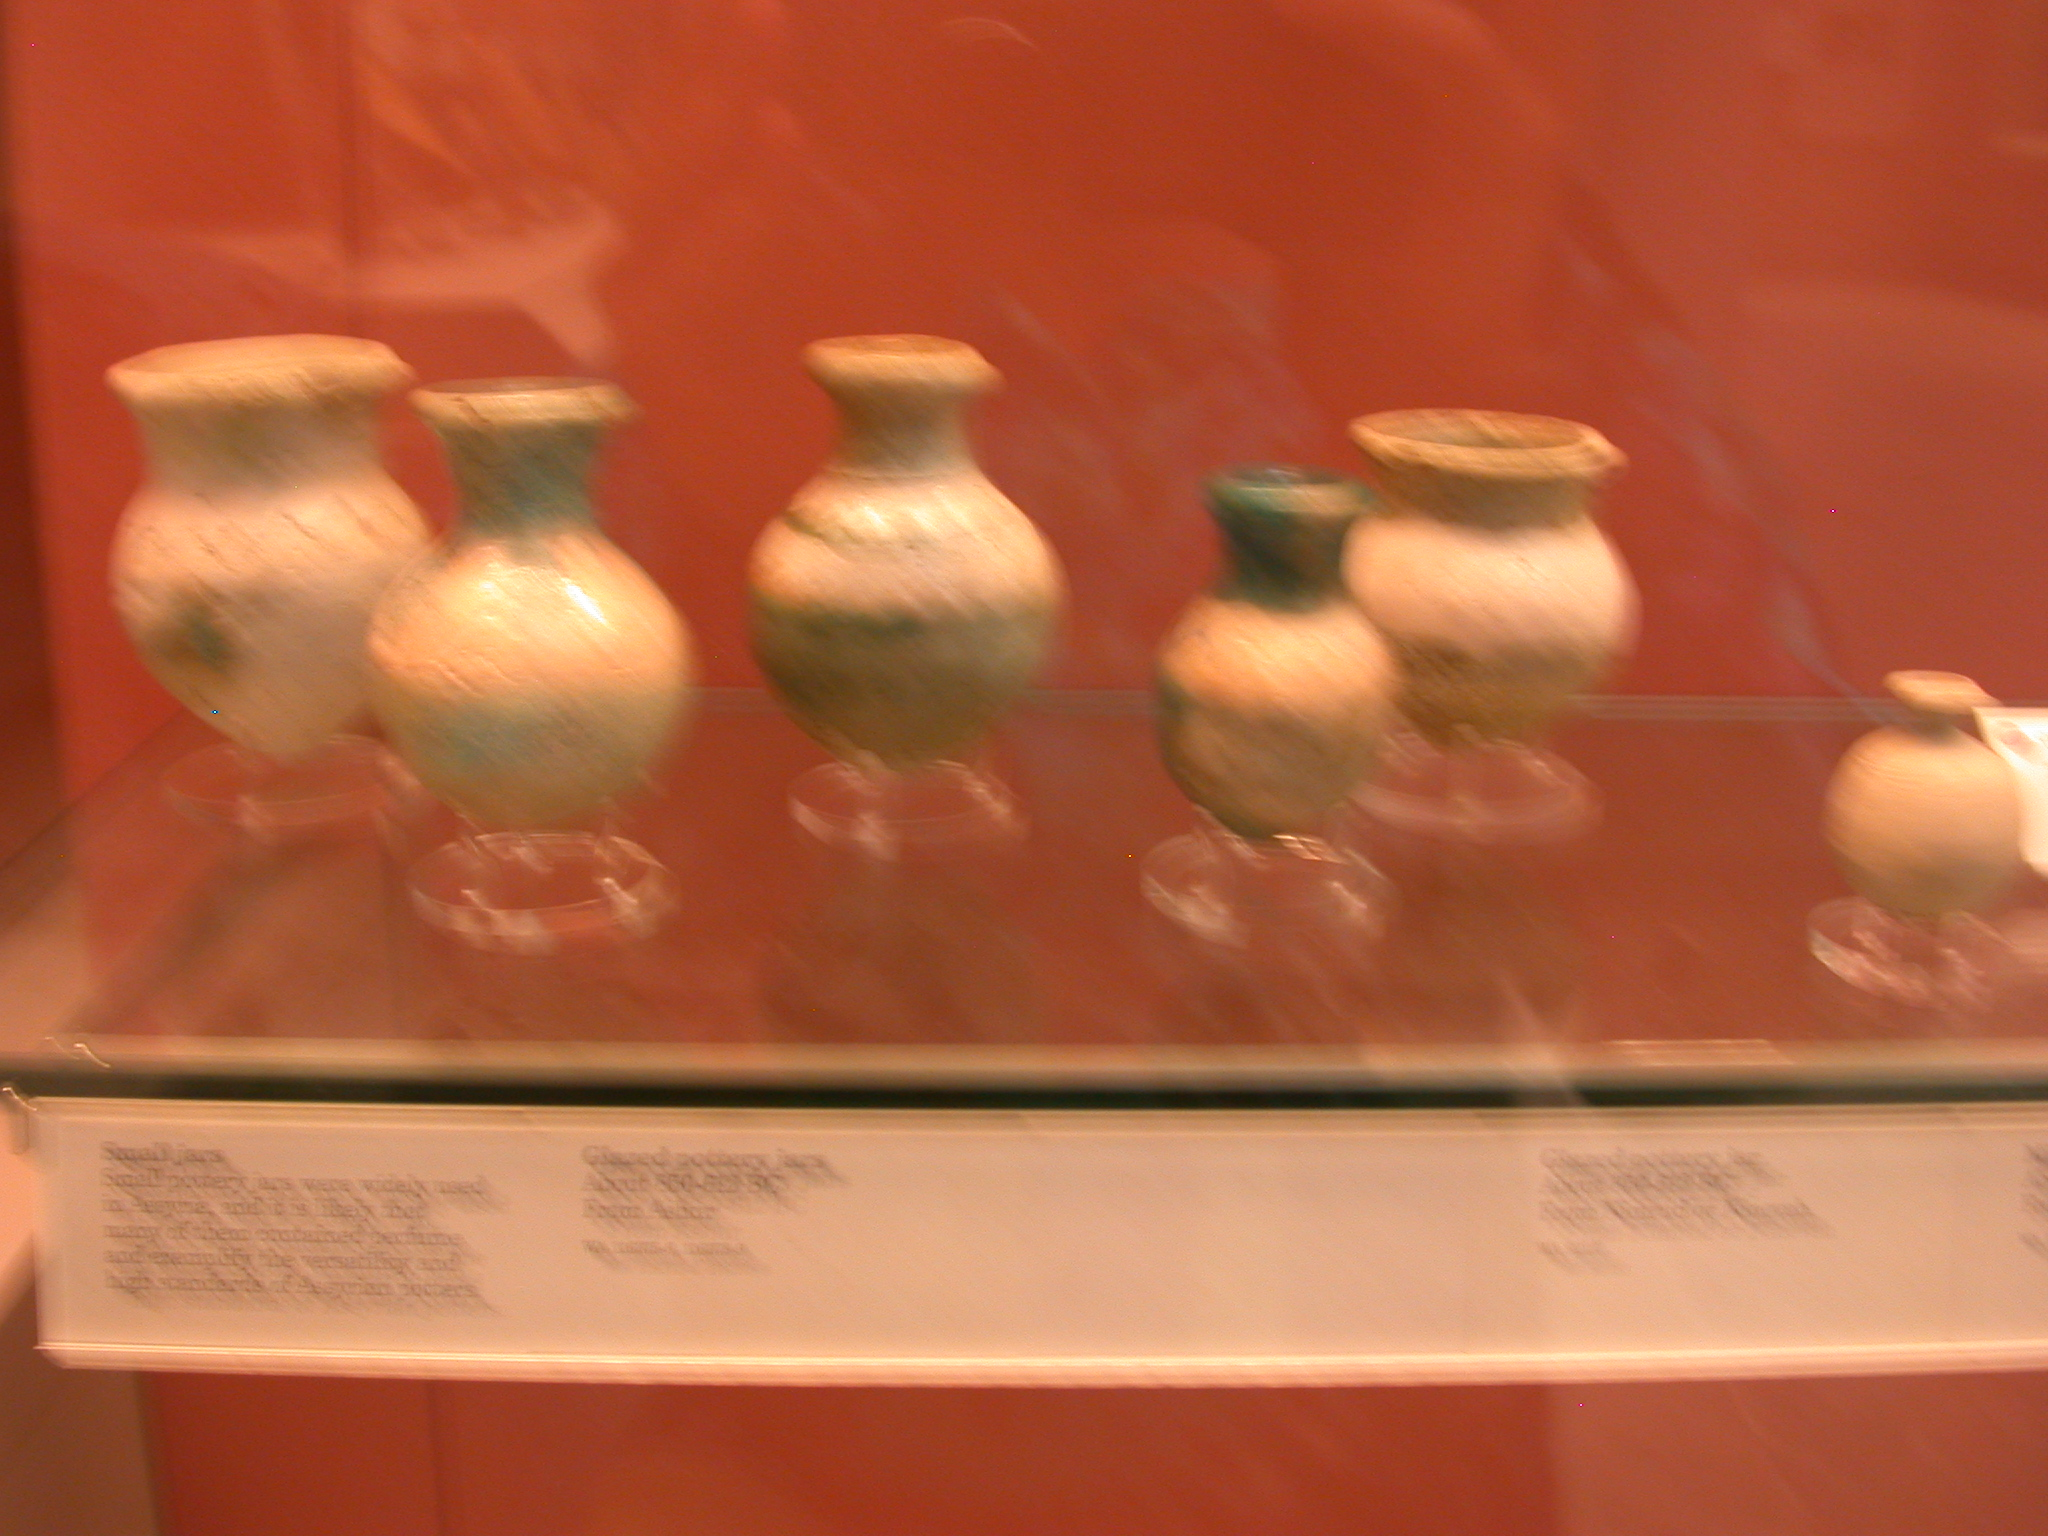 Glazed Pottery Jars, Nimrud or Nineveh, Assyria, in British Museum, London, England